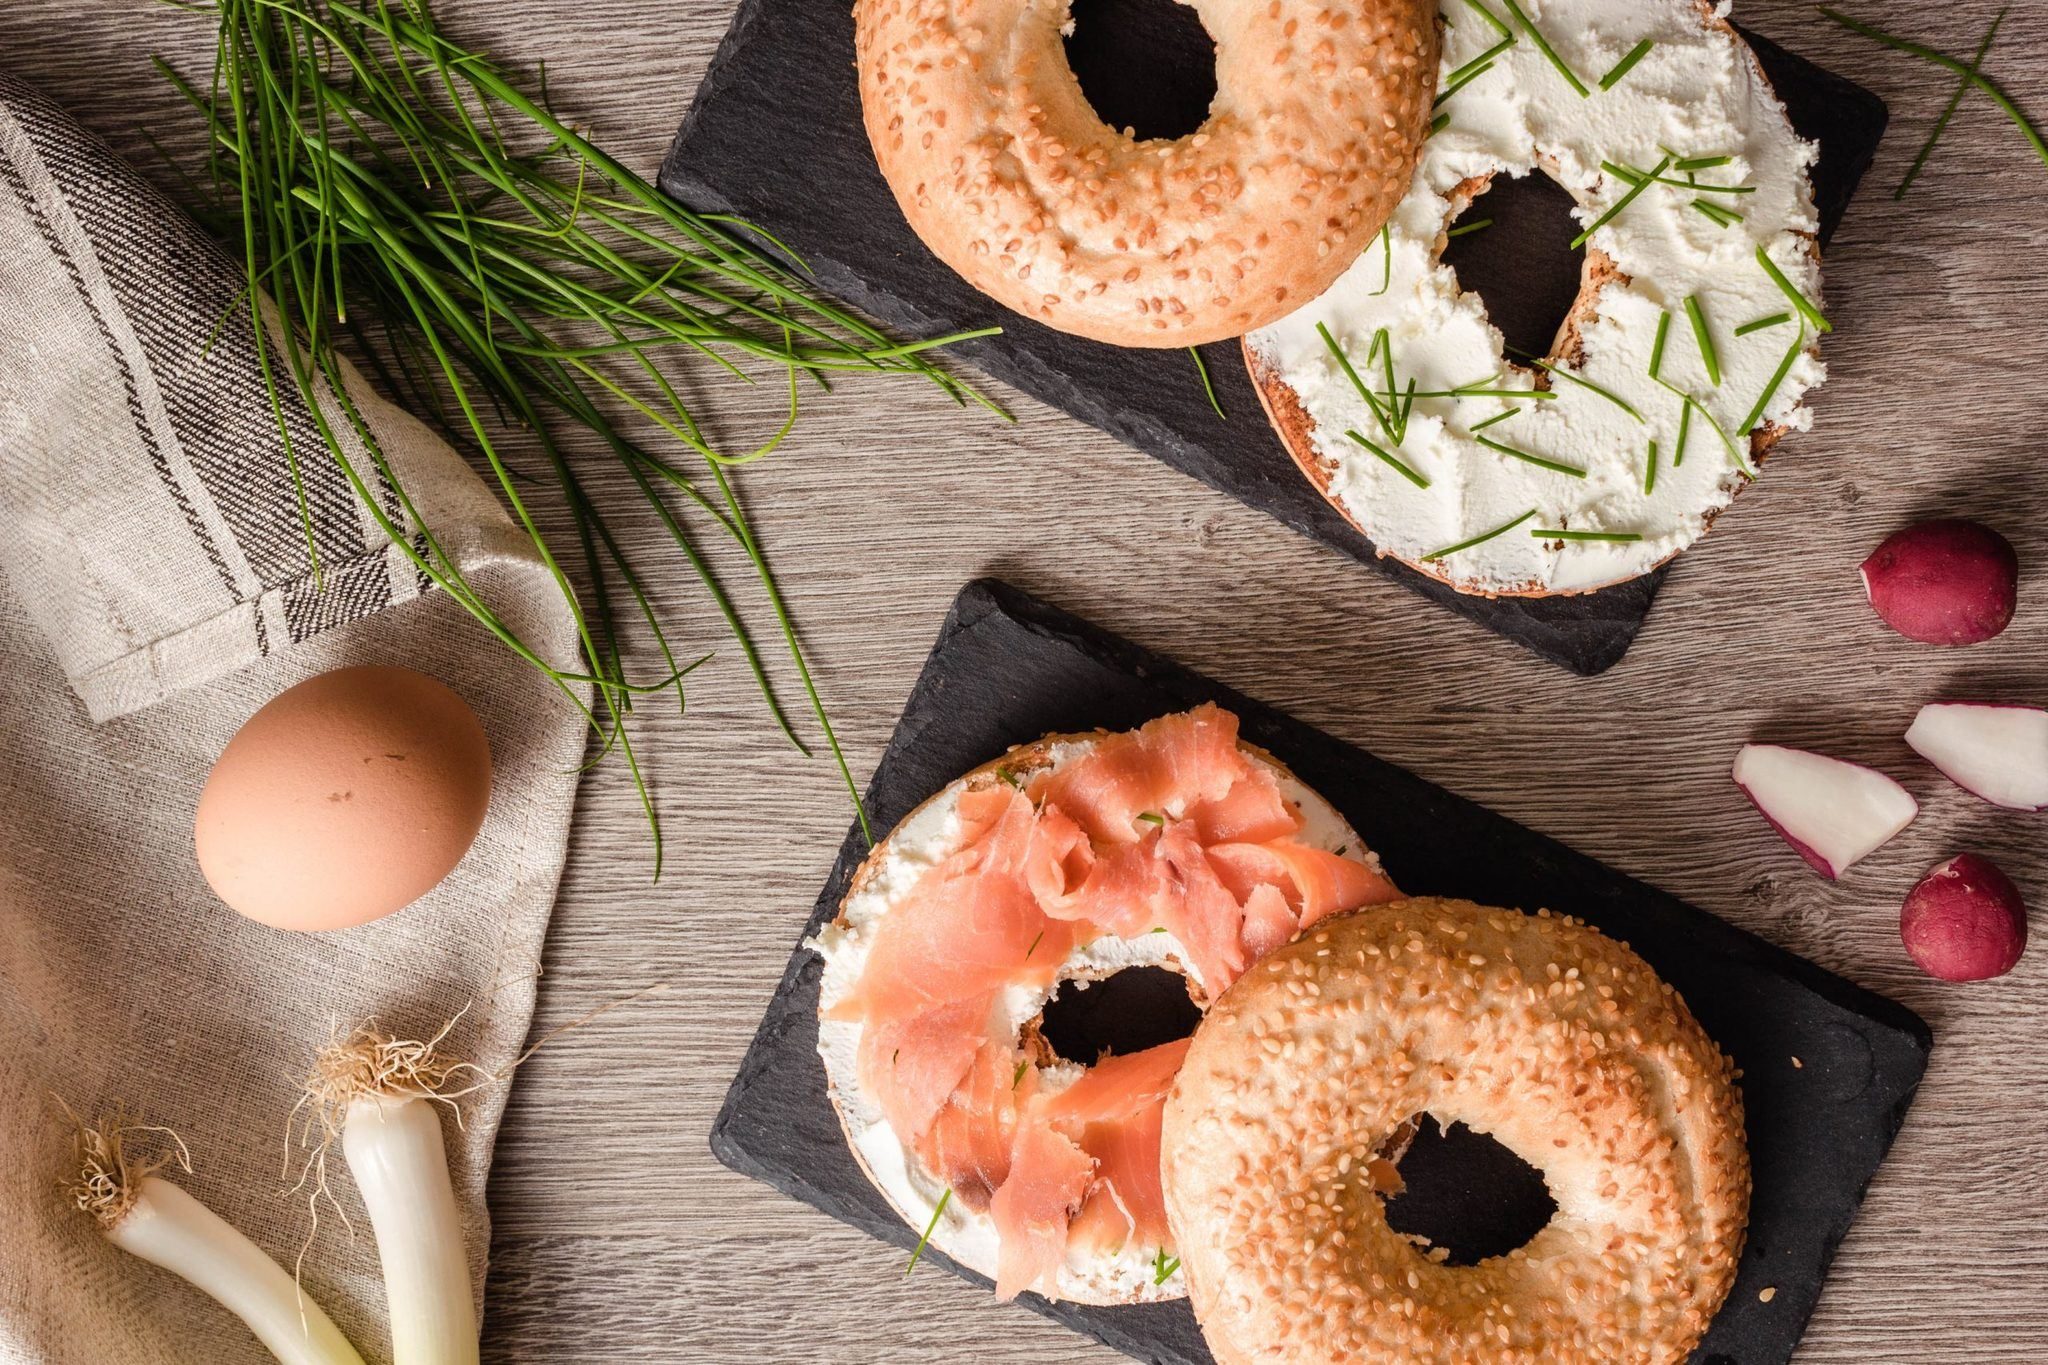 cream-cheese-with-smoked-salmon-bagel-sandwich-3957501